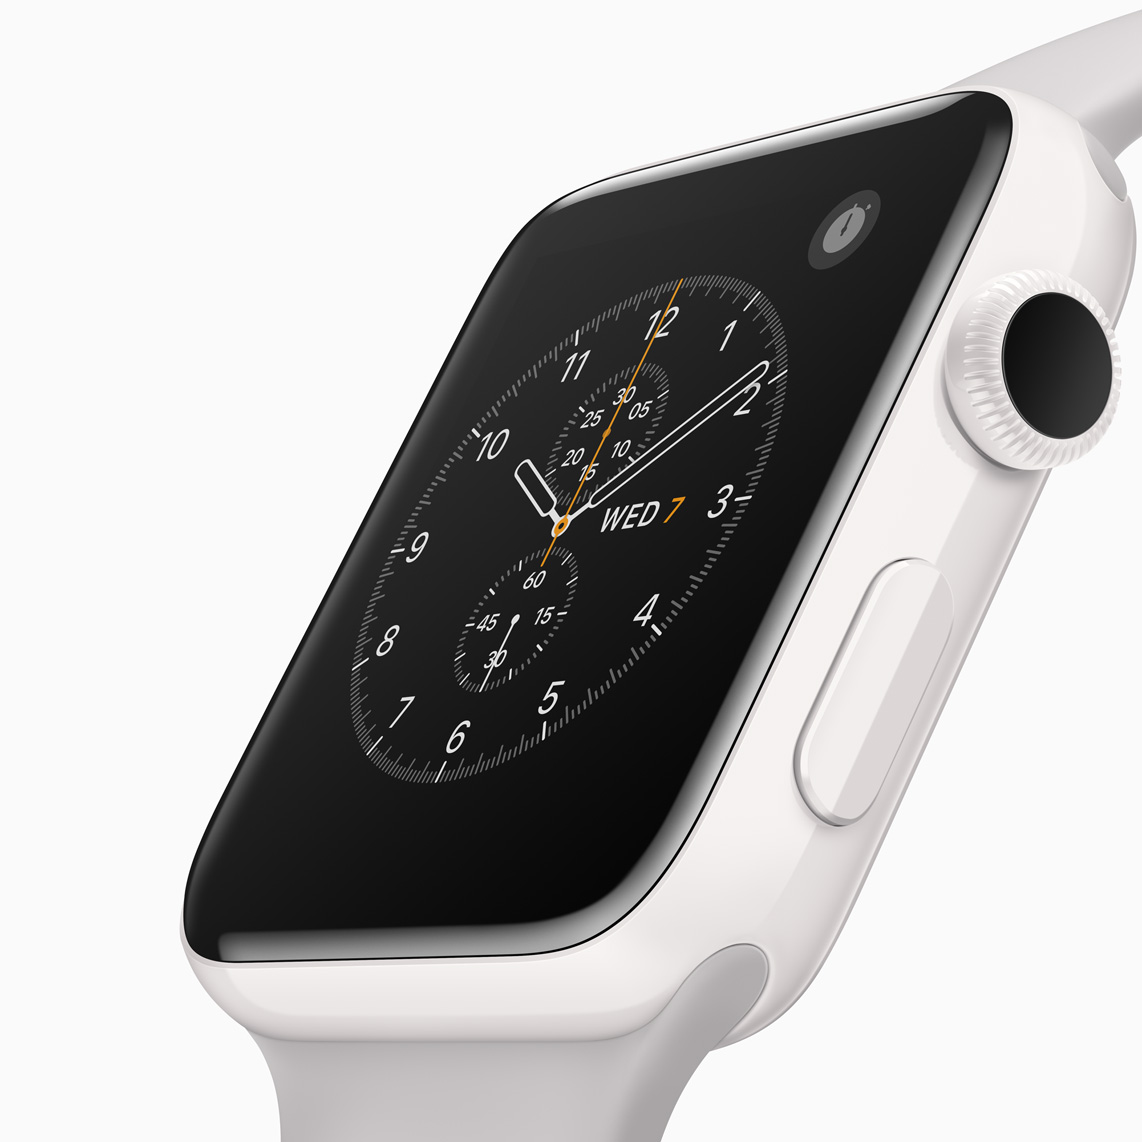 The Apple Watch 2 with ceramic case.